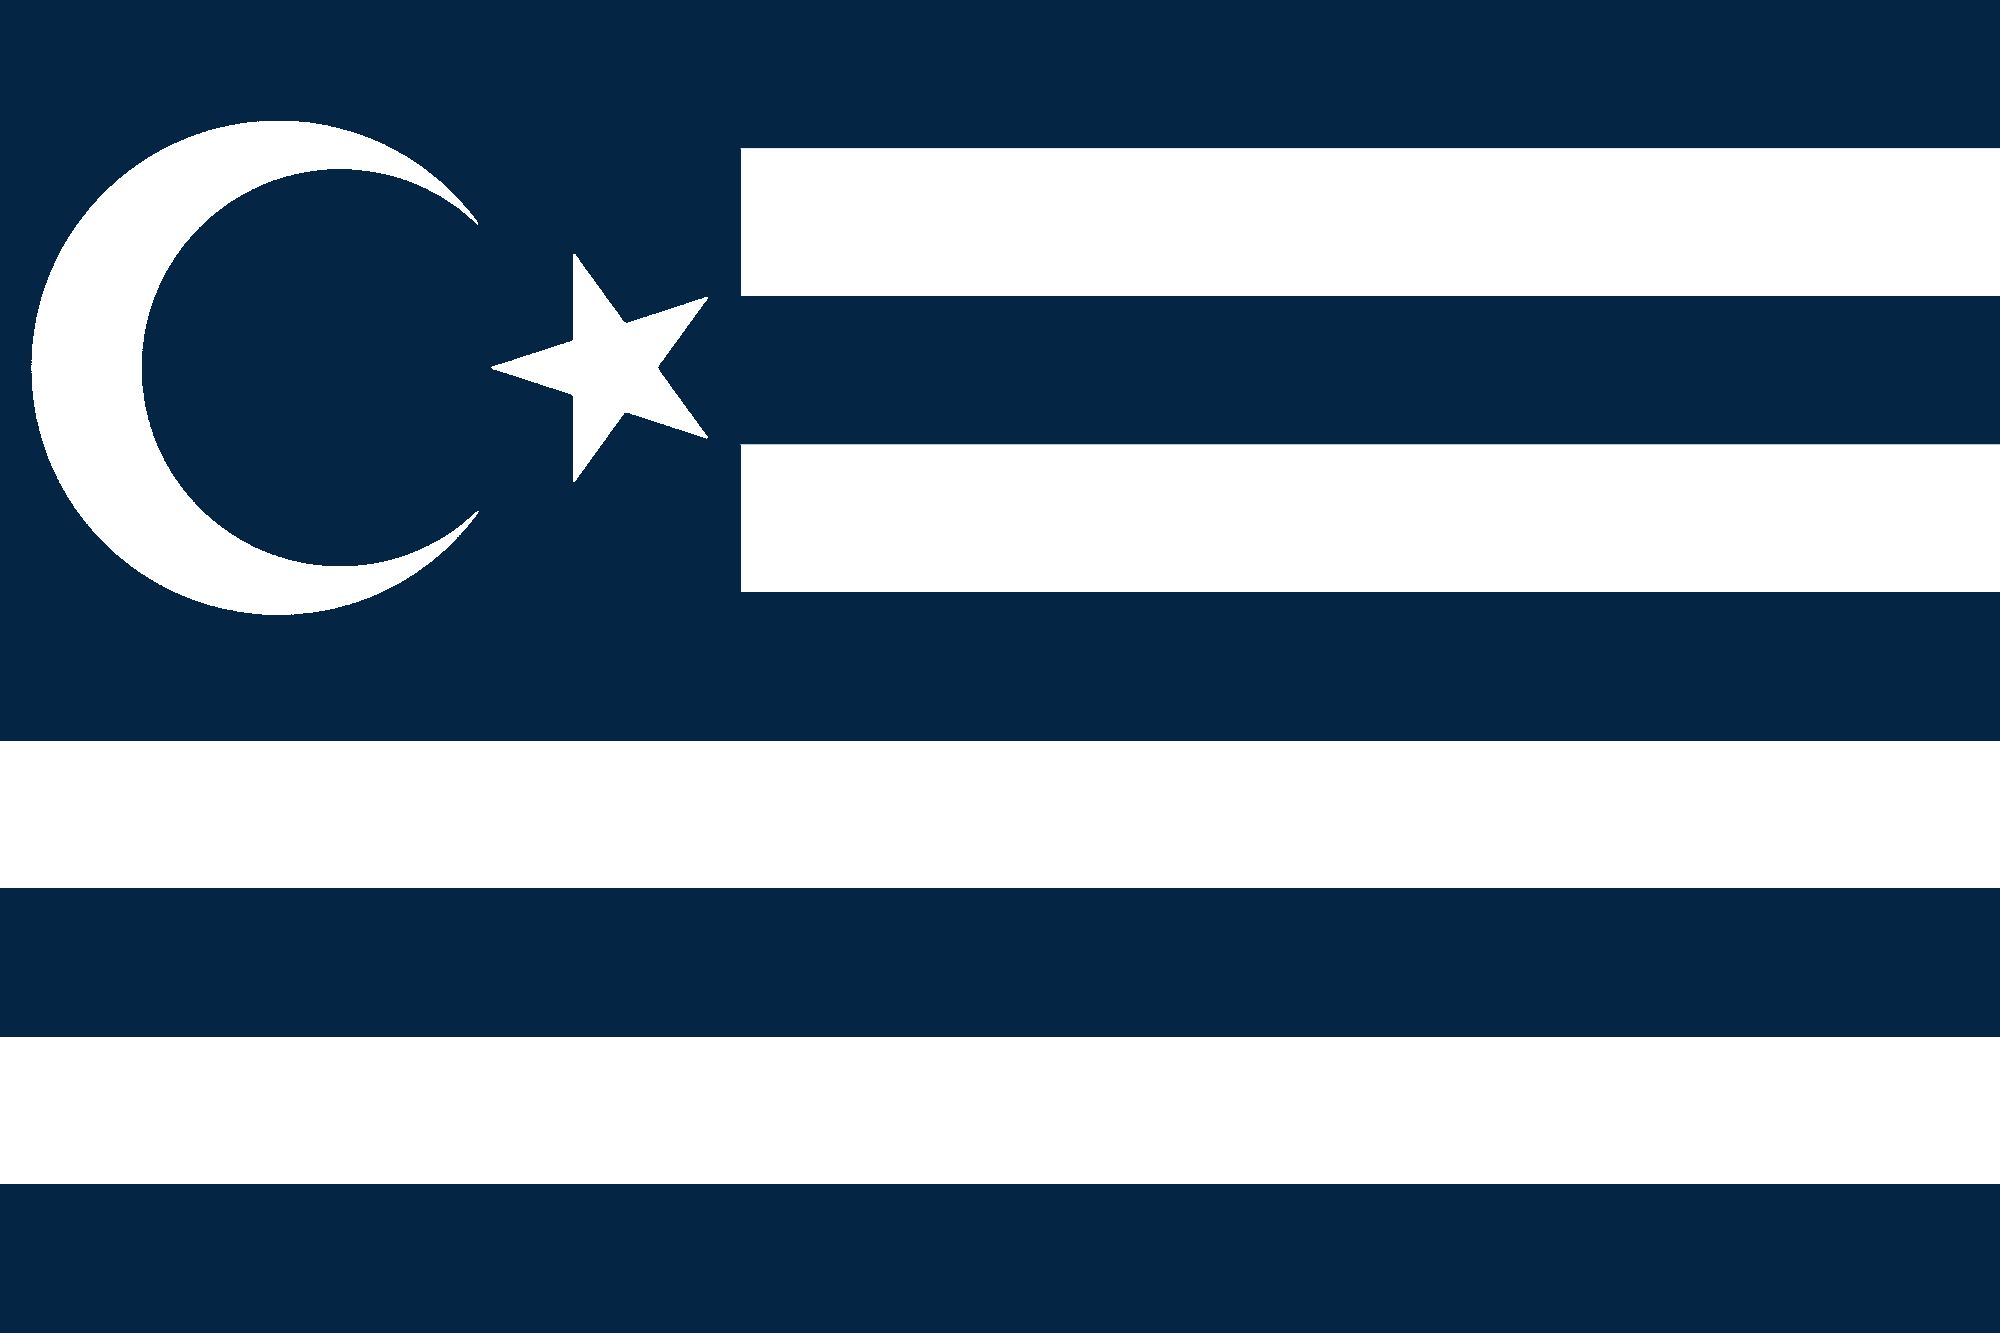 Flag Of Greece Backgrounds, Compatible - PC, Mobile, Gadgets| 2000x1333 px